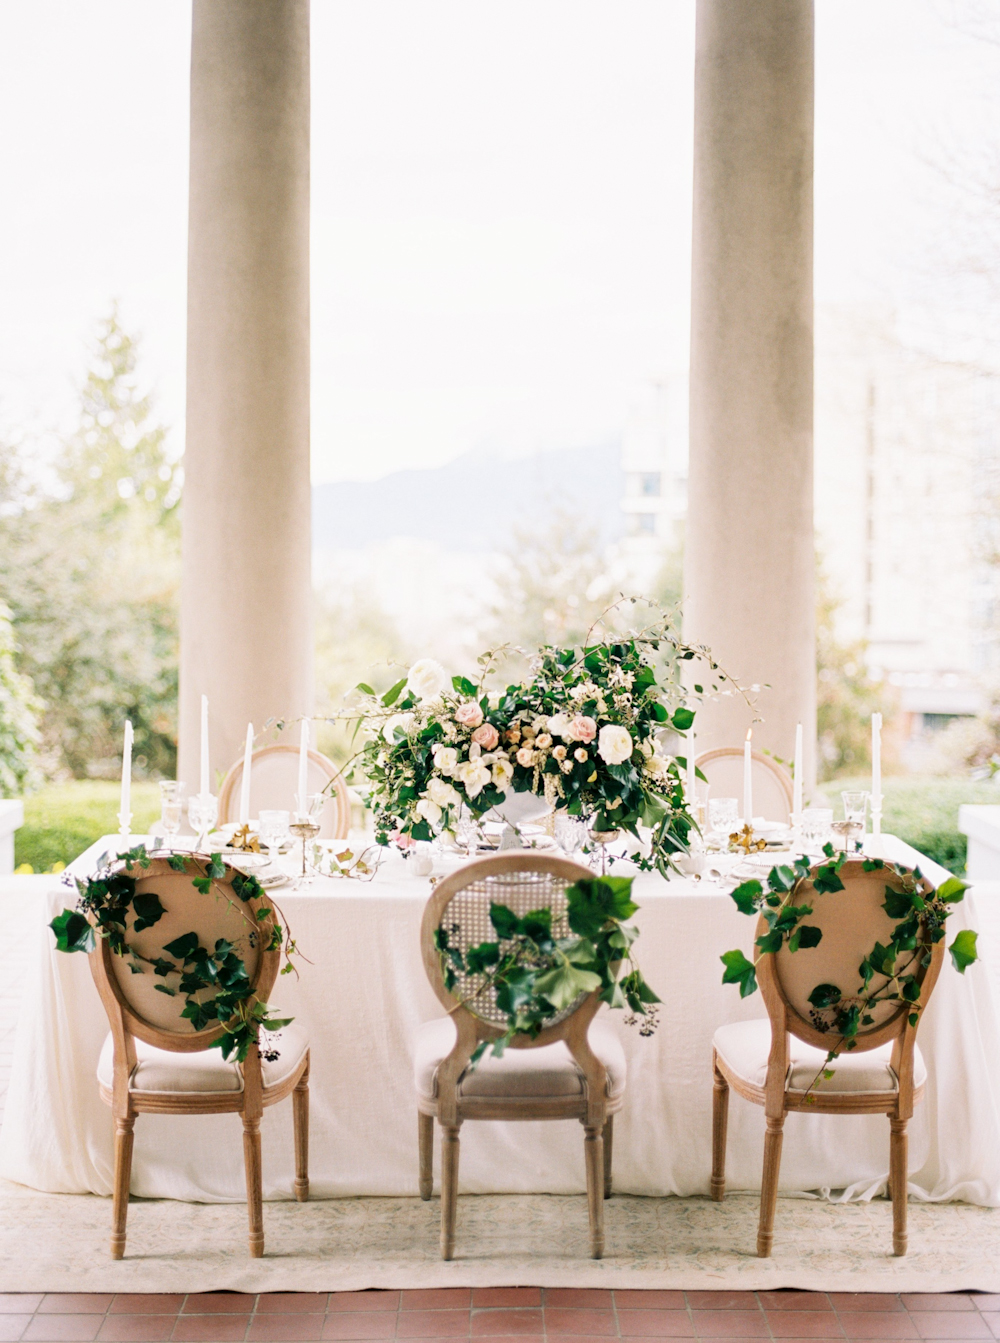 Wedding Table with Greenery